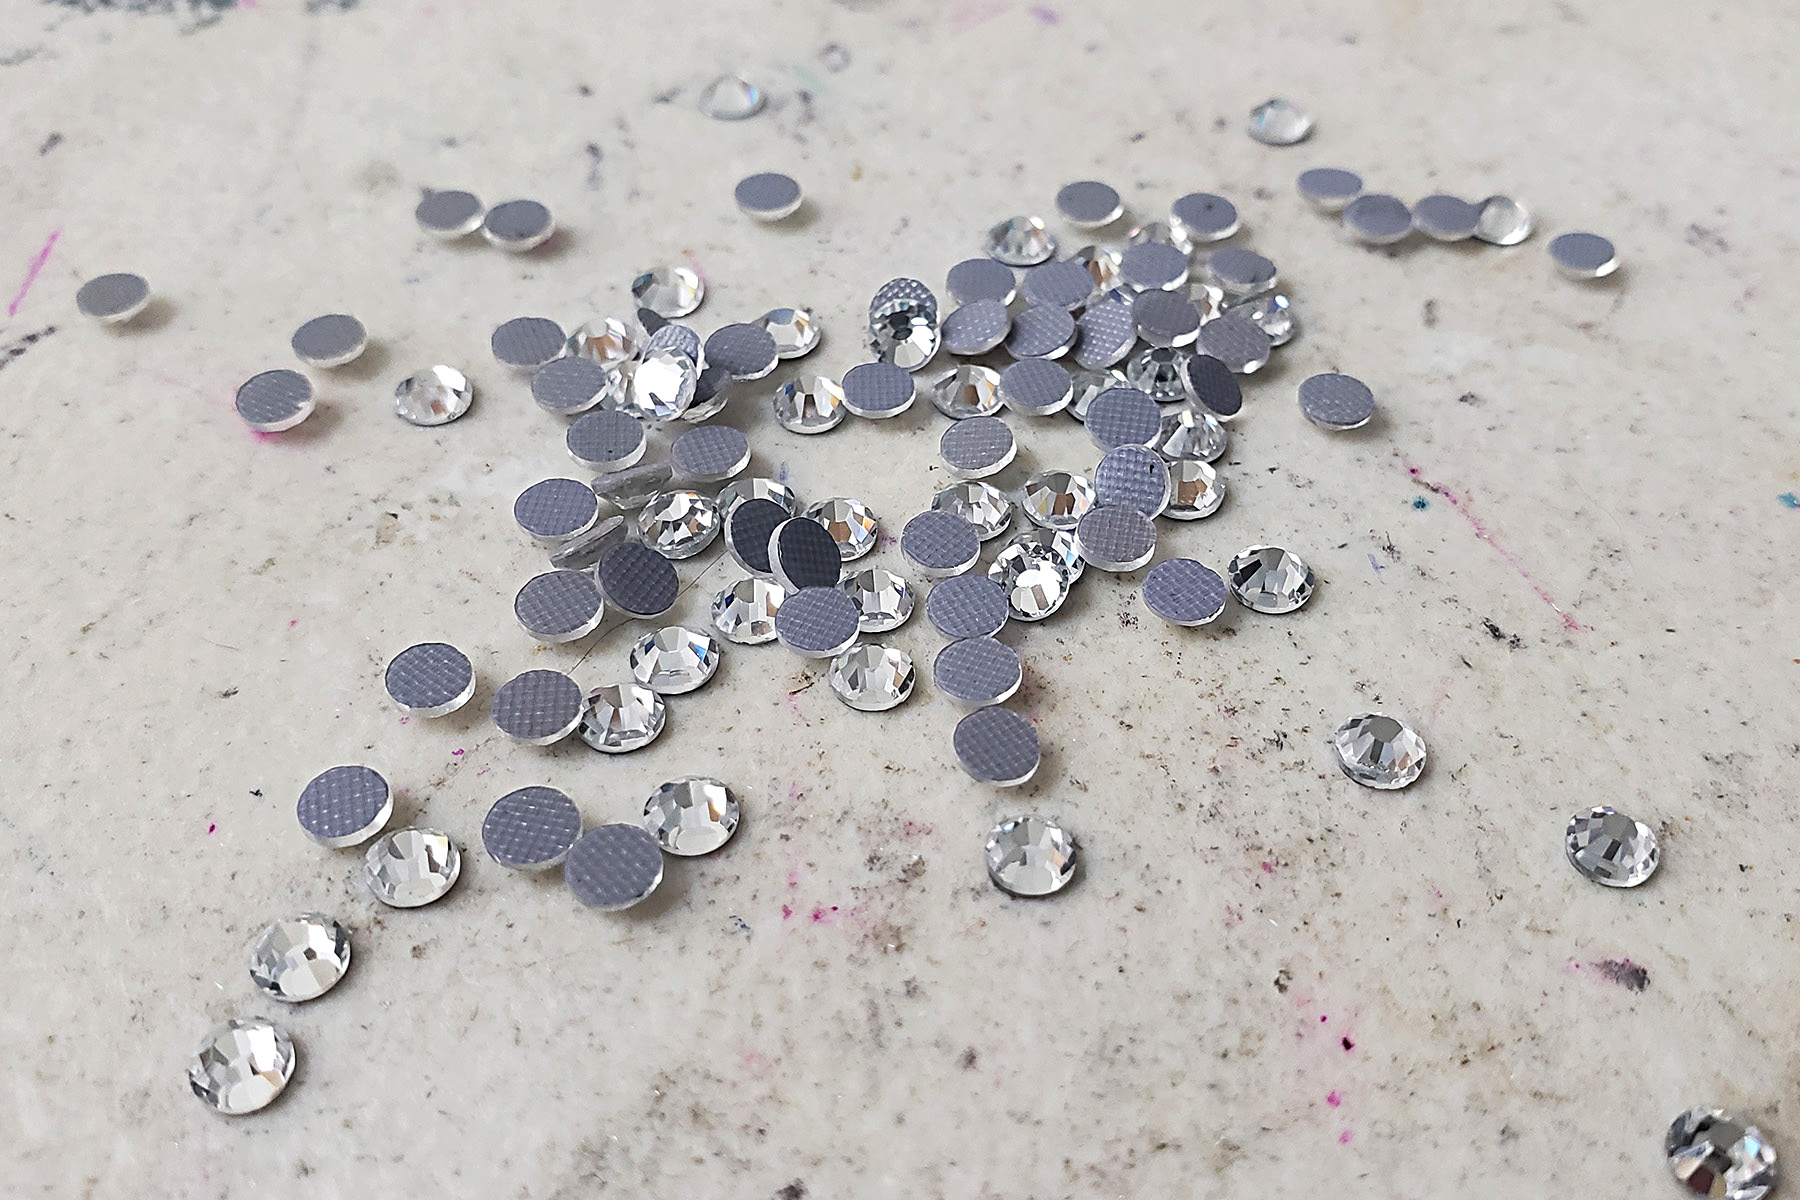 A pile of clear rhinestones on a grey work table.